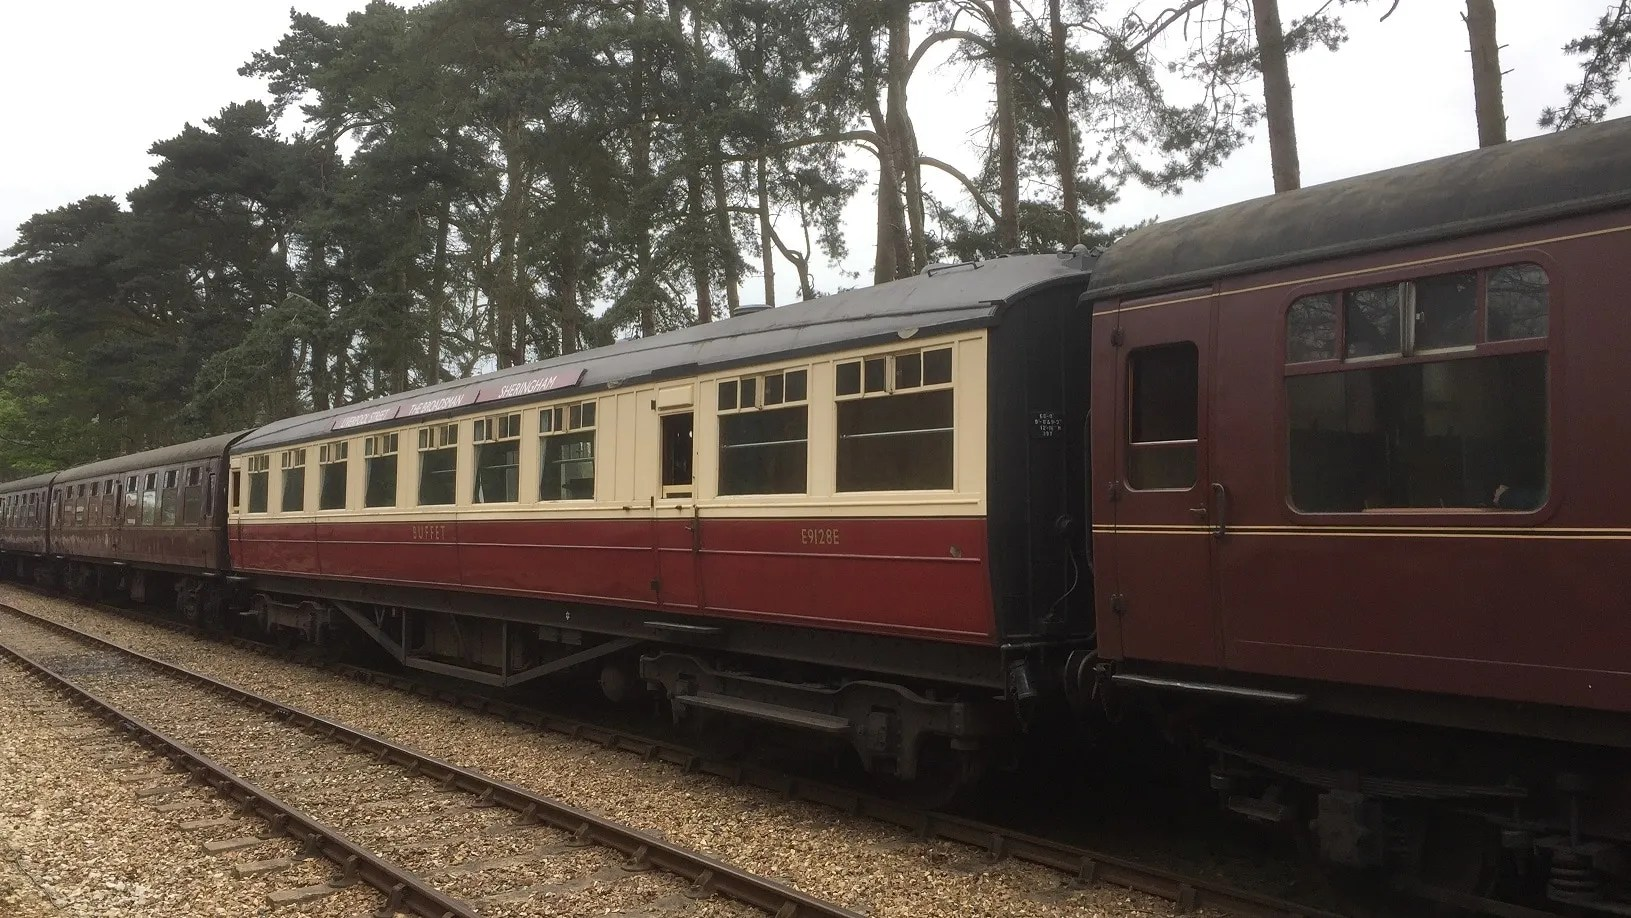 Gresley buffet coach E9128E showing The Broadsman carriage boards at the North Norfolk Railway